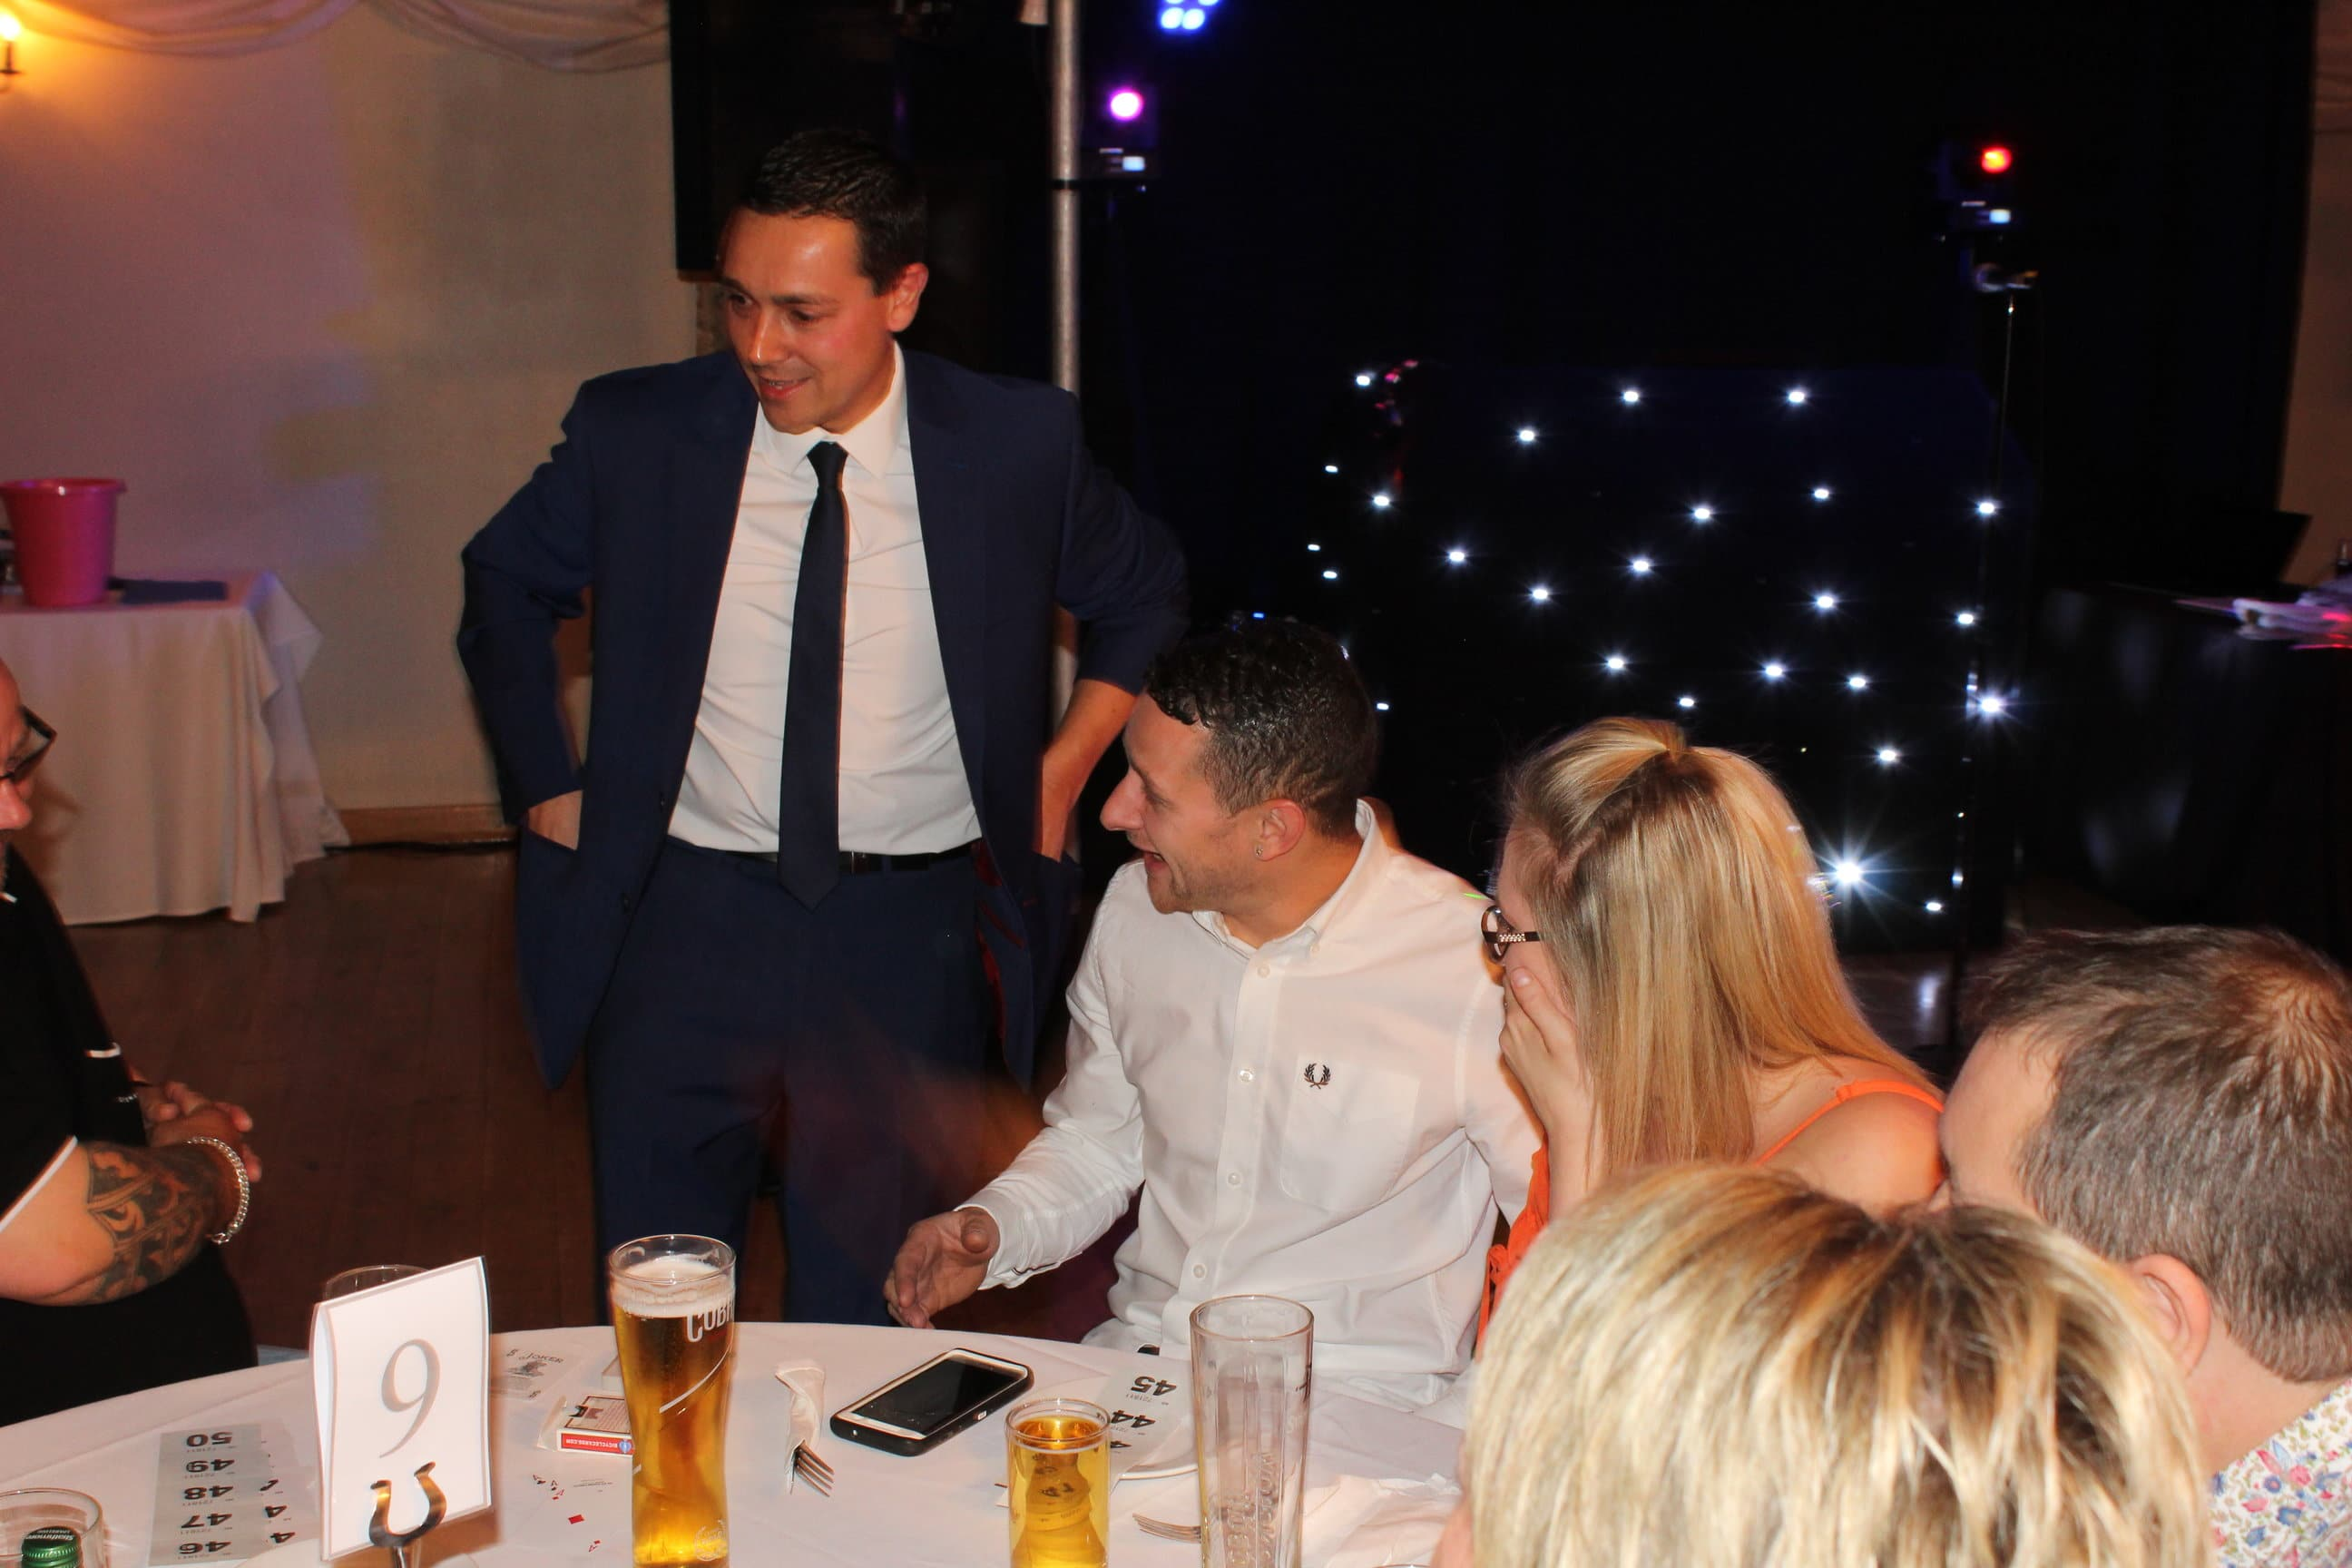 Nick Twist party magician laughing with guests